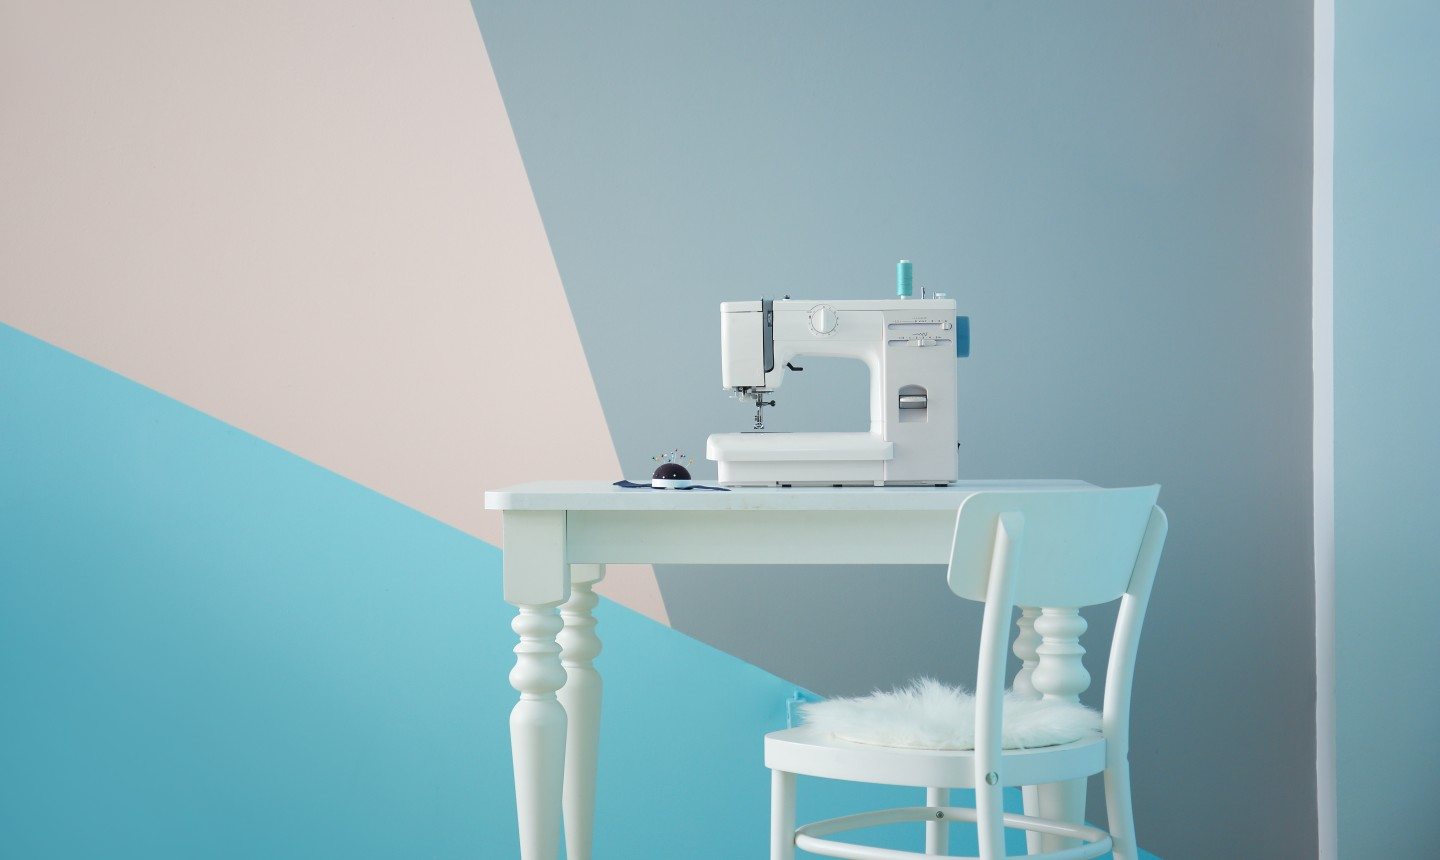 sewing machine in front of geometric painted wall